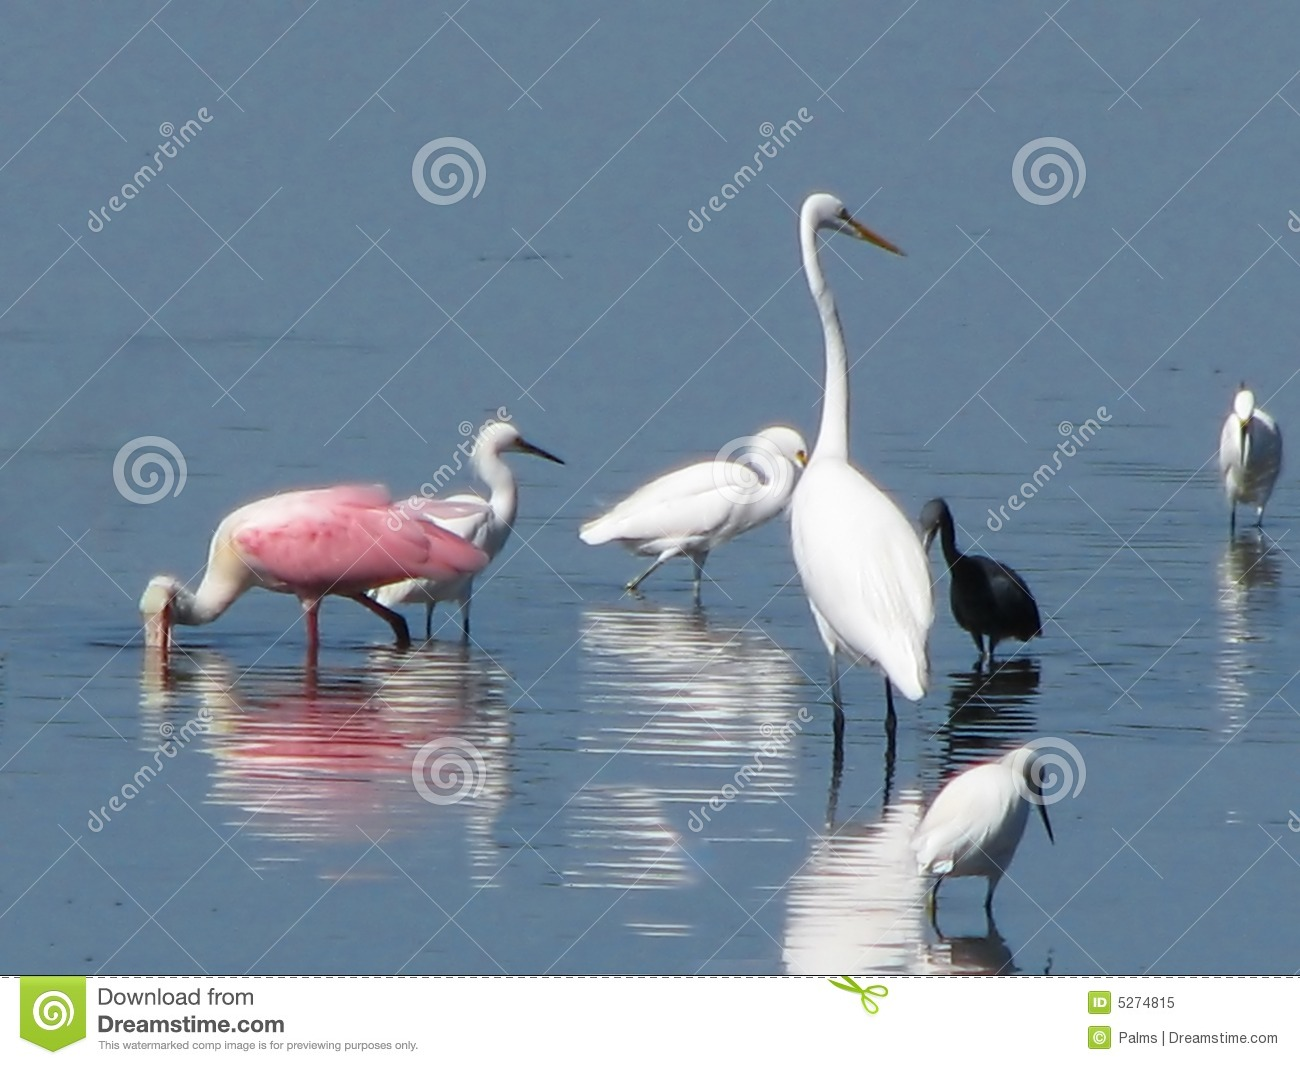 Birds wading in the water